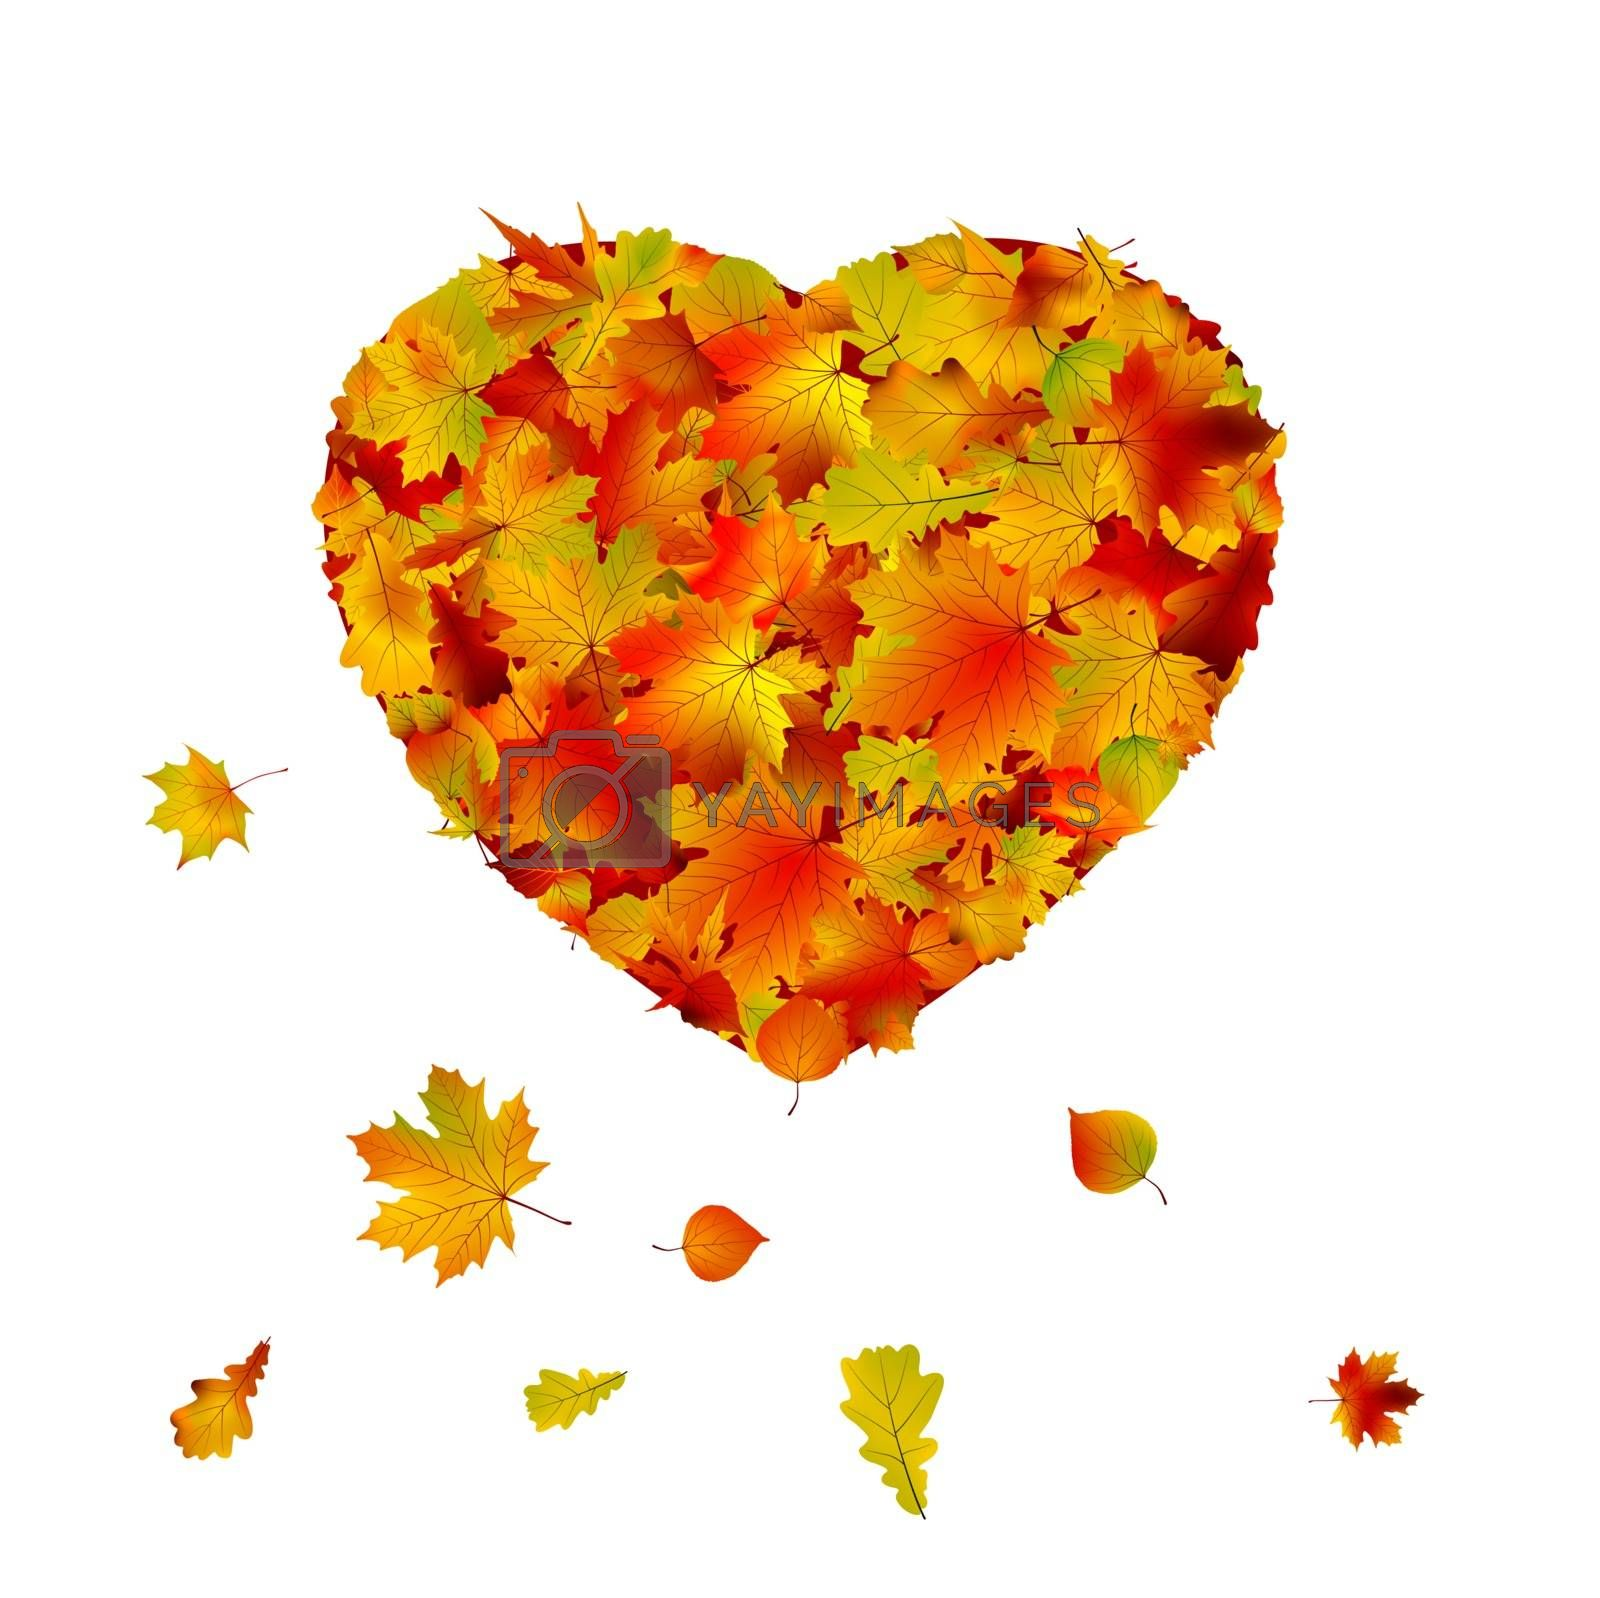 Heart shape made from autumn leaf. EPS 8 by Petrov_Vladimir